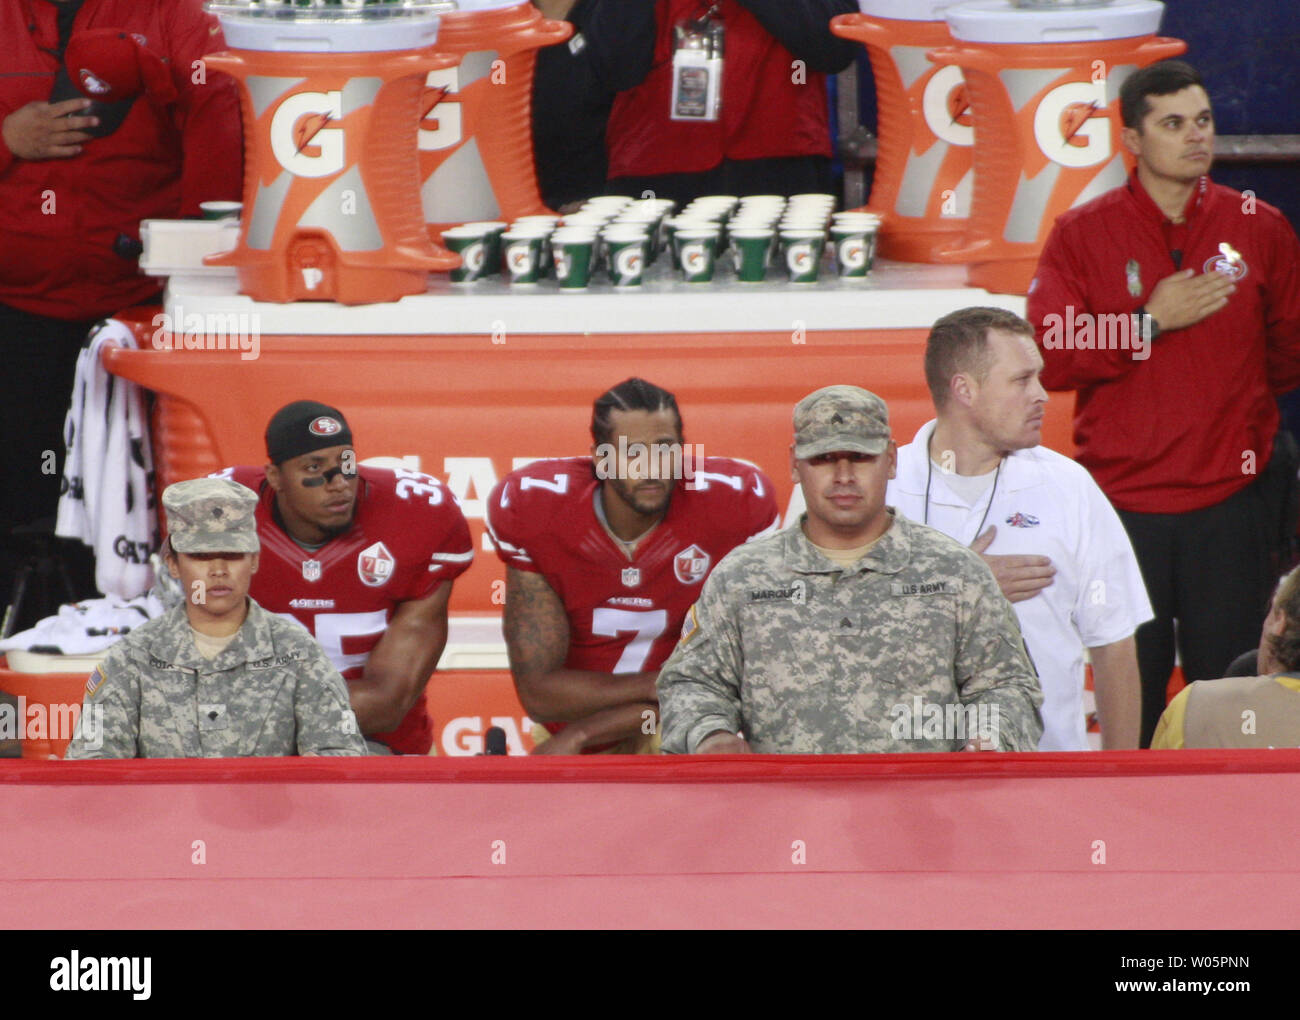 San Francisco 49ers QB Colin Kaepernick (7) kneels alongside teammate Eric Reid during the National Anthem before playing the Los Angeles Rams at Levi's Stadium in Santa Clara, California on September 12. 2016. Kaepernick and Reid are kneeling In a protest of racial injustice.   Photo by Bruce Gordon/UPI Stock Photo